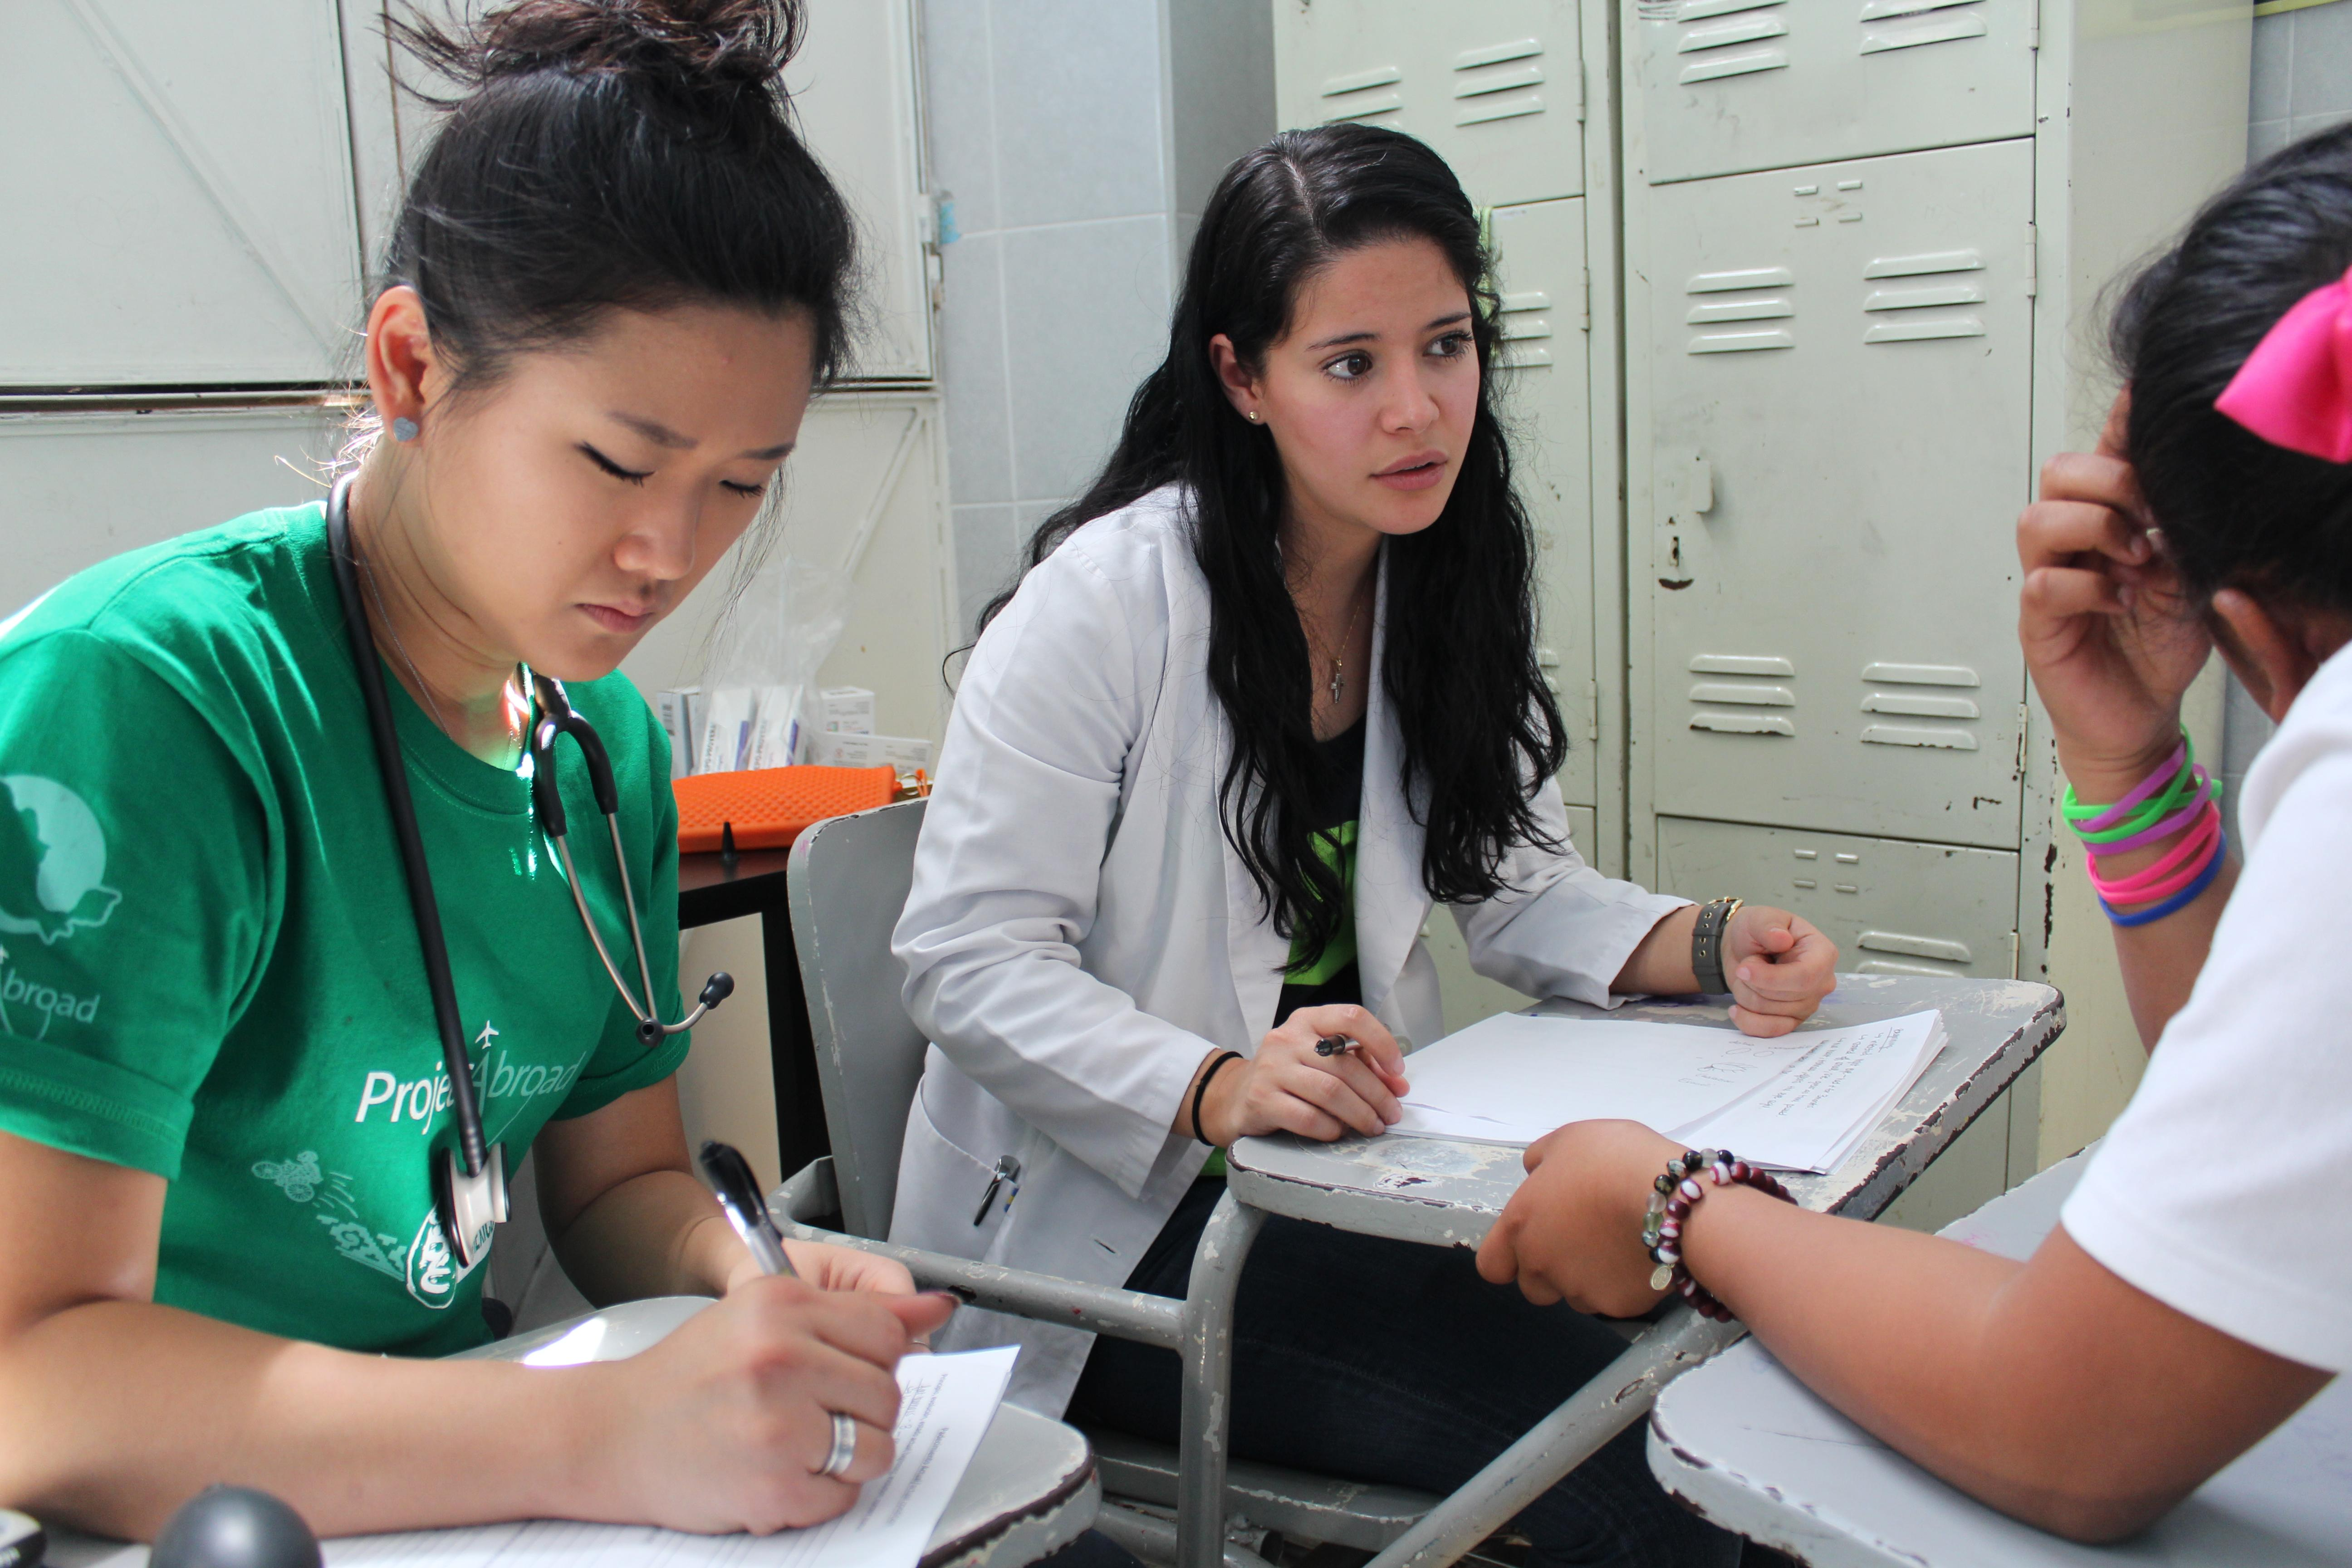 Female Medical Interns make notes on paper with a local doctor during their internship in Mexico.